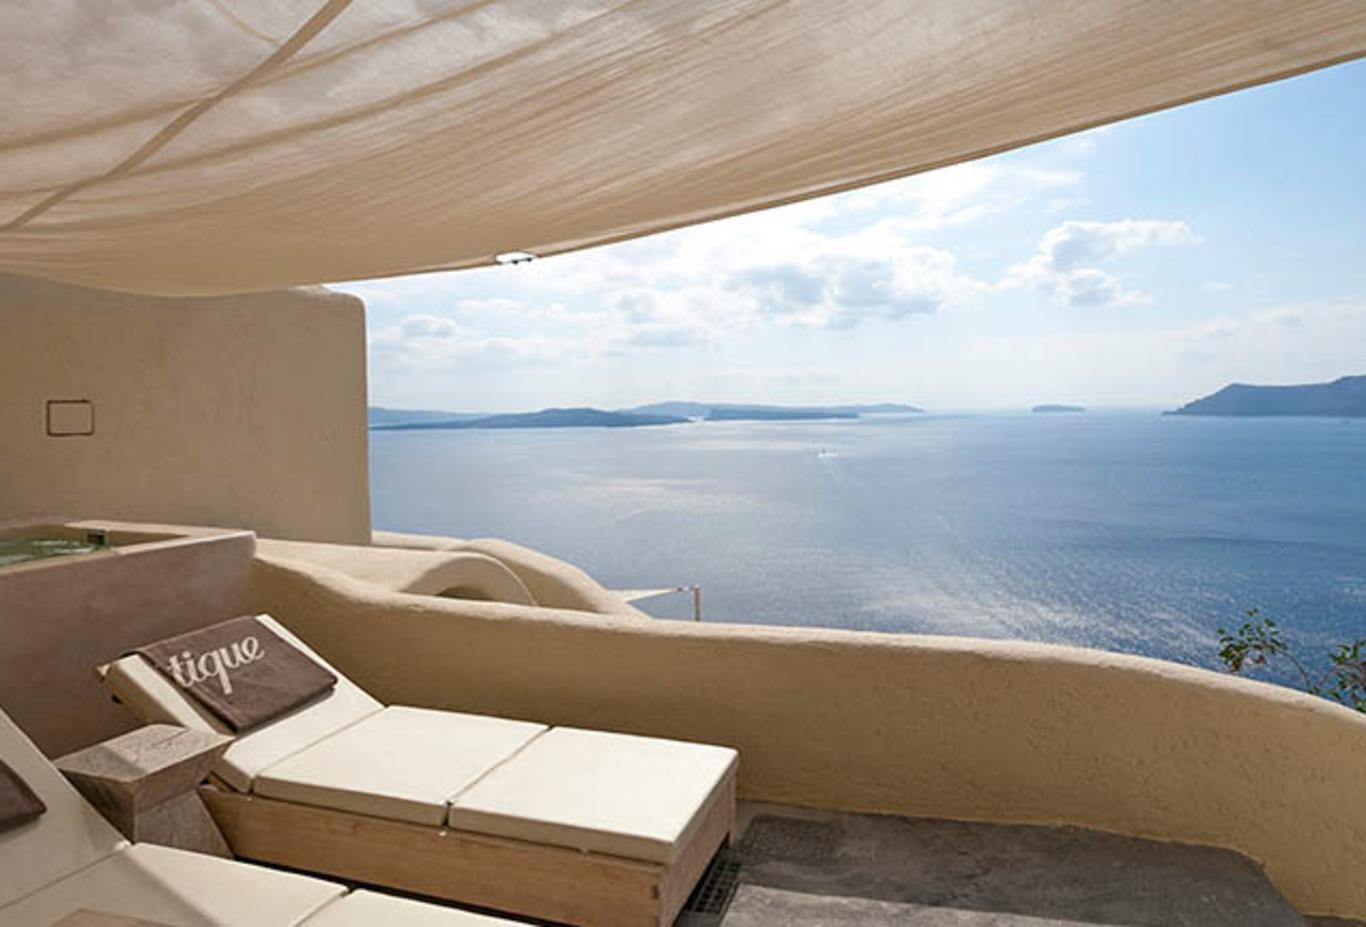 Air of Secrecy villa balcony